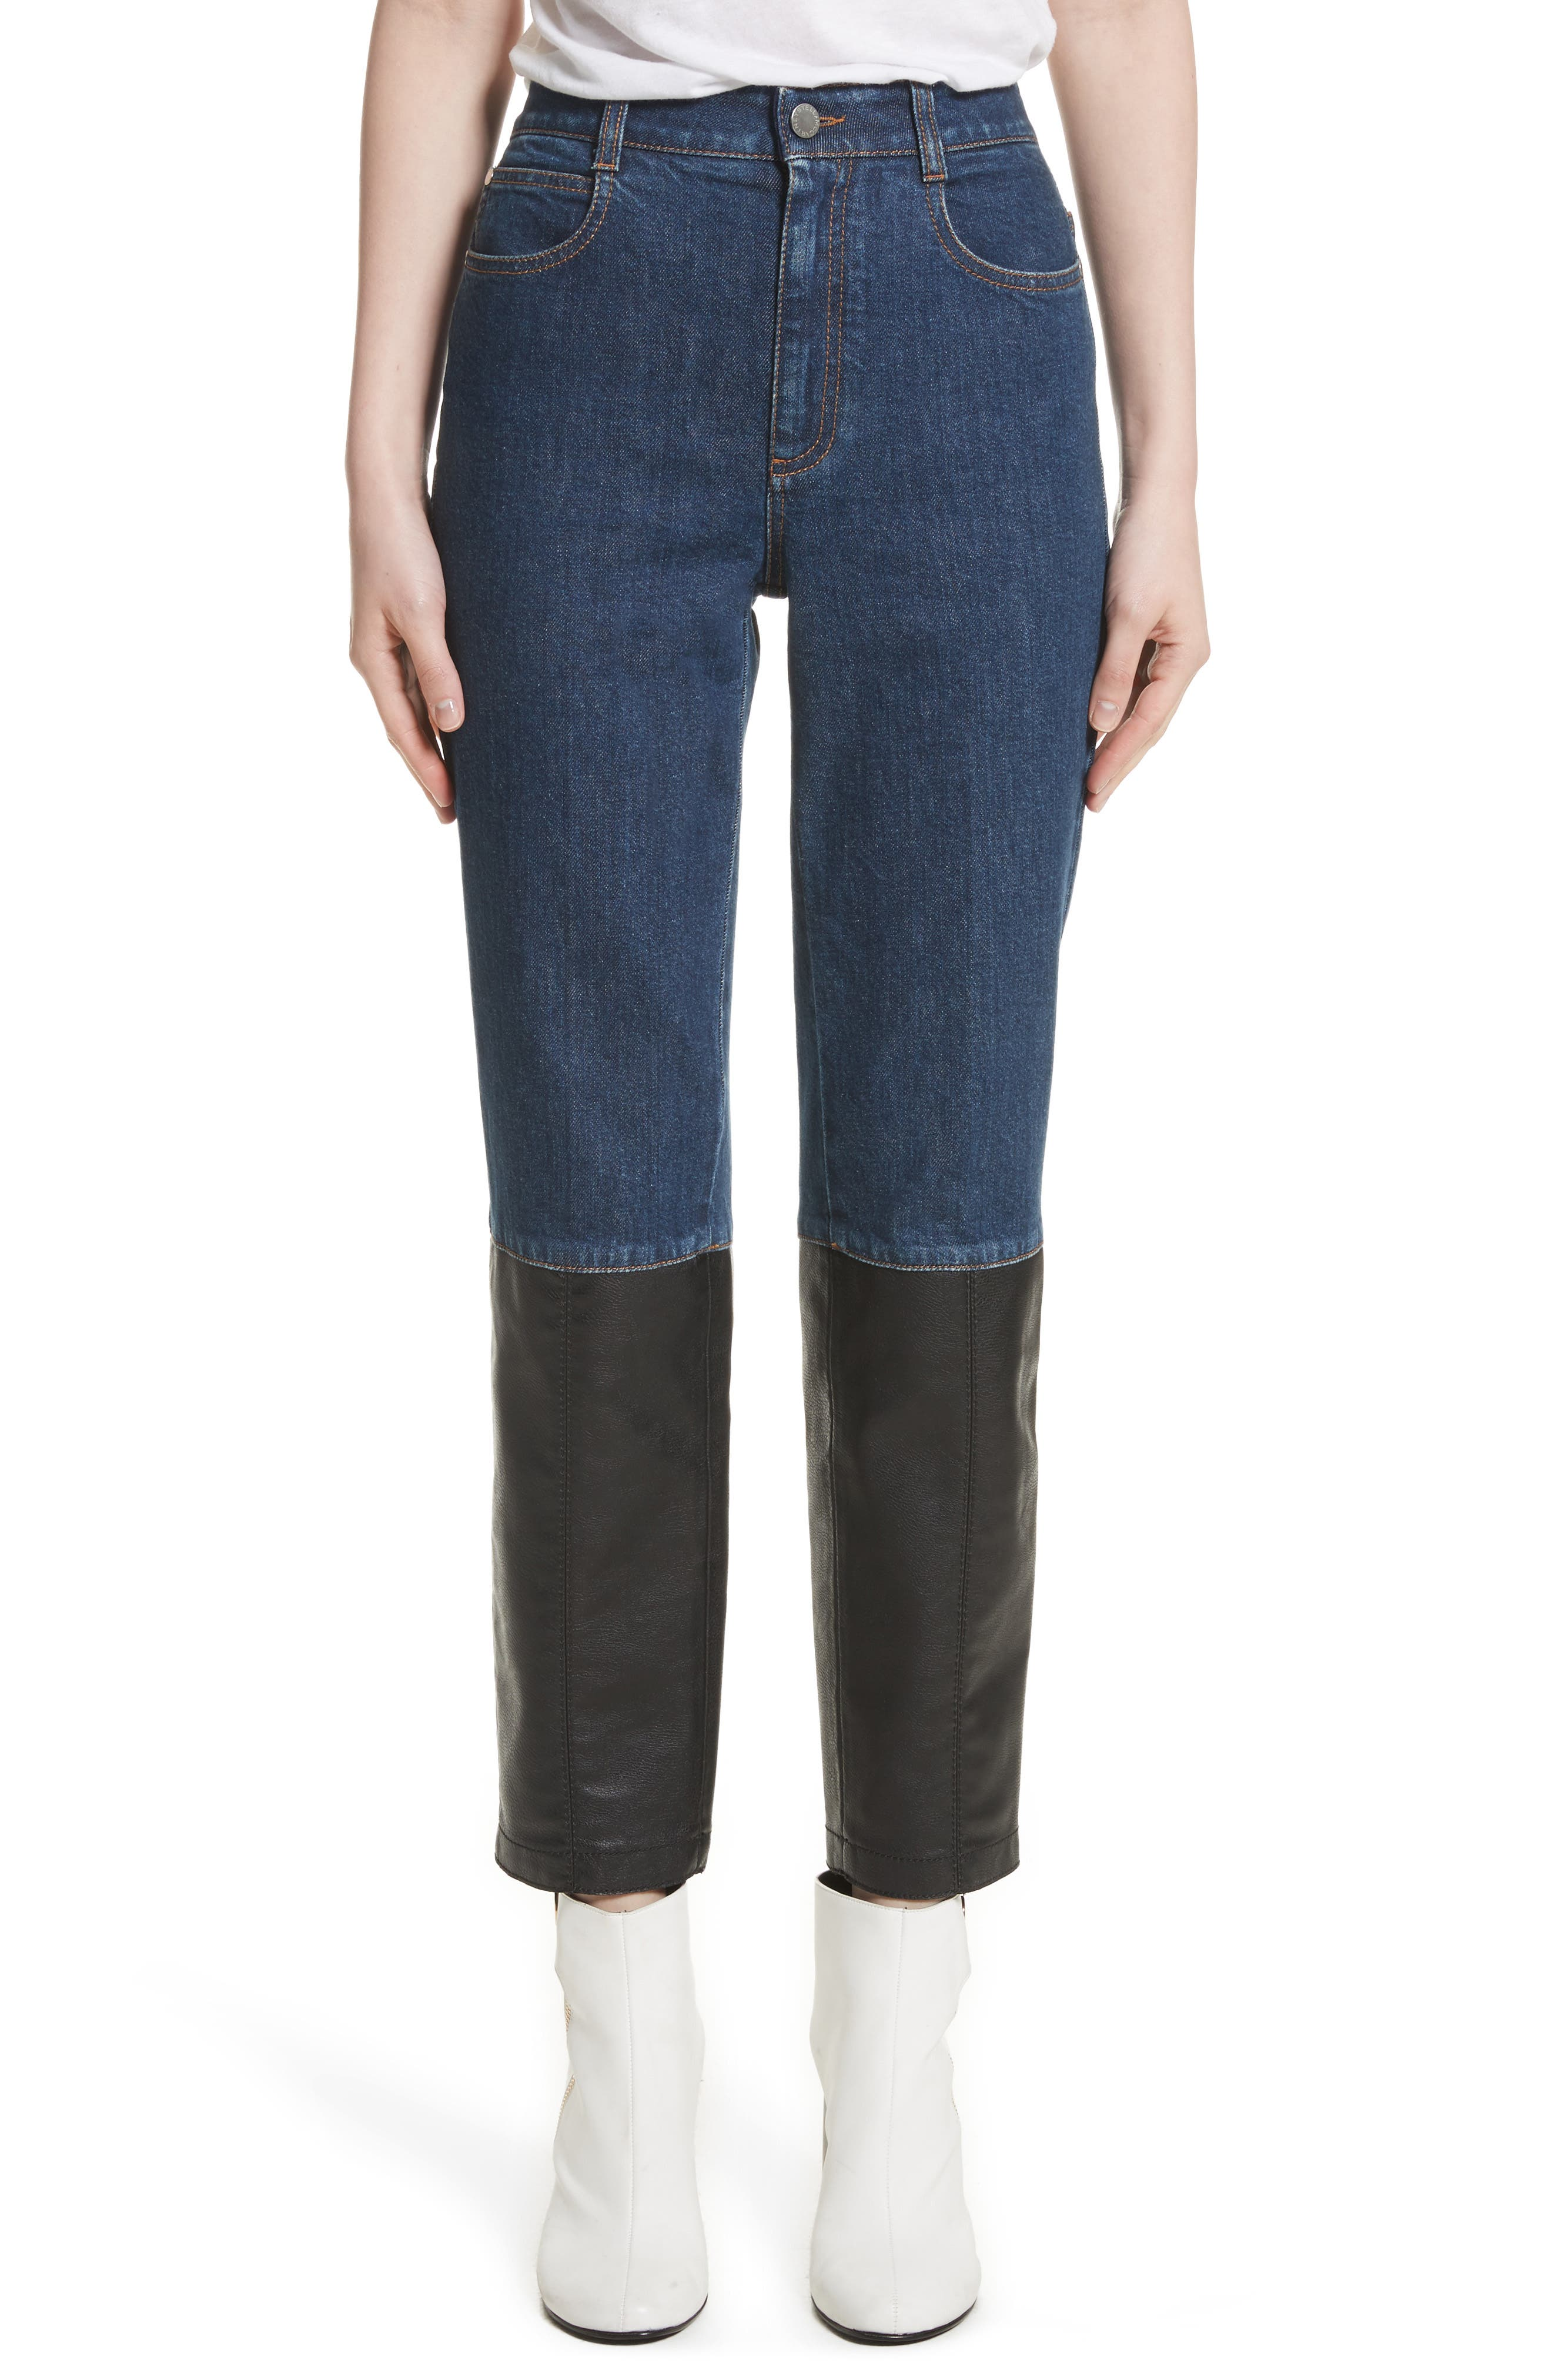 Alternate Image 1 Selected - Stella McCartney Alter Leather Trim High Waist Straight Leg Jeans